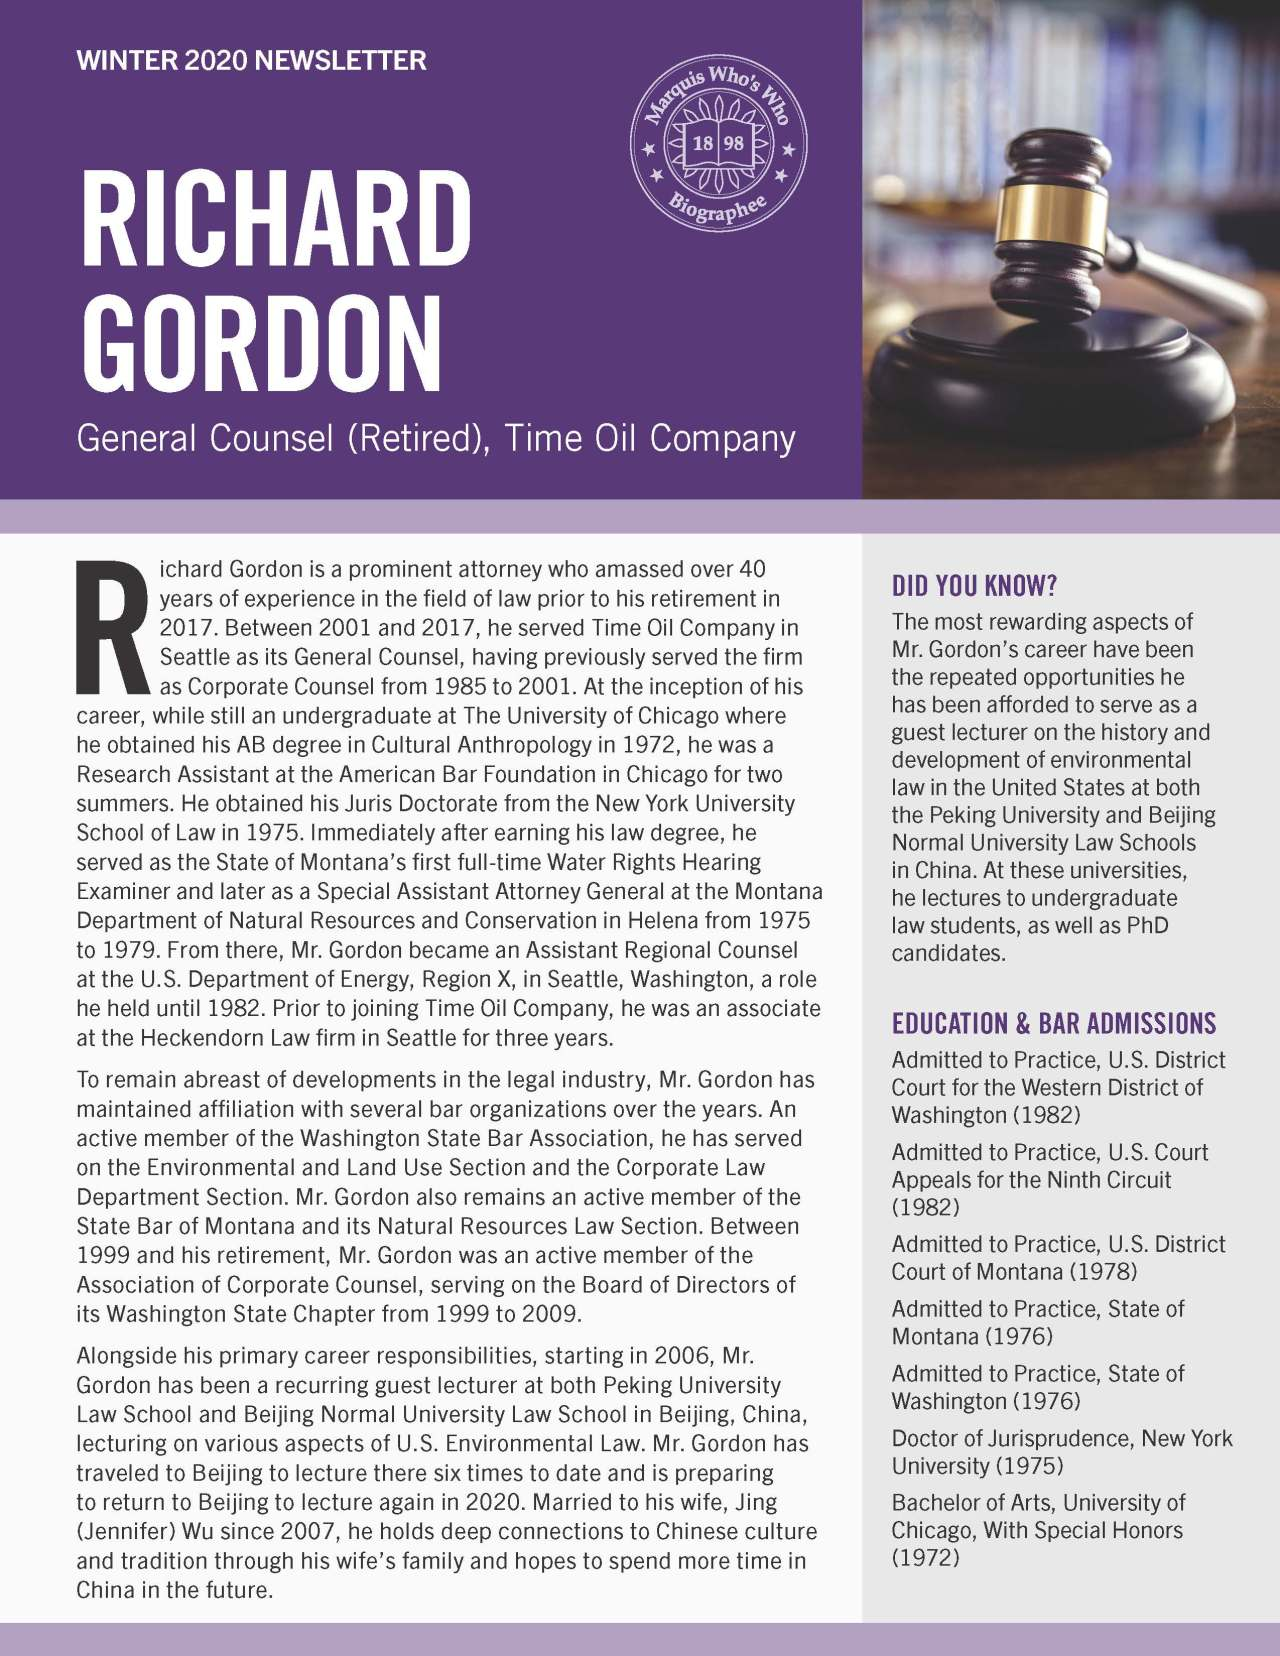 Gordon, Richard 4788043_22893424 Newsletter REVISED